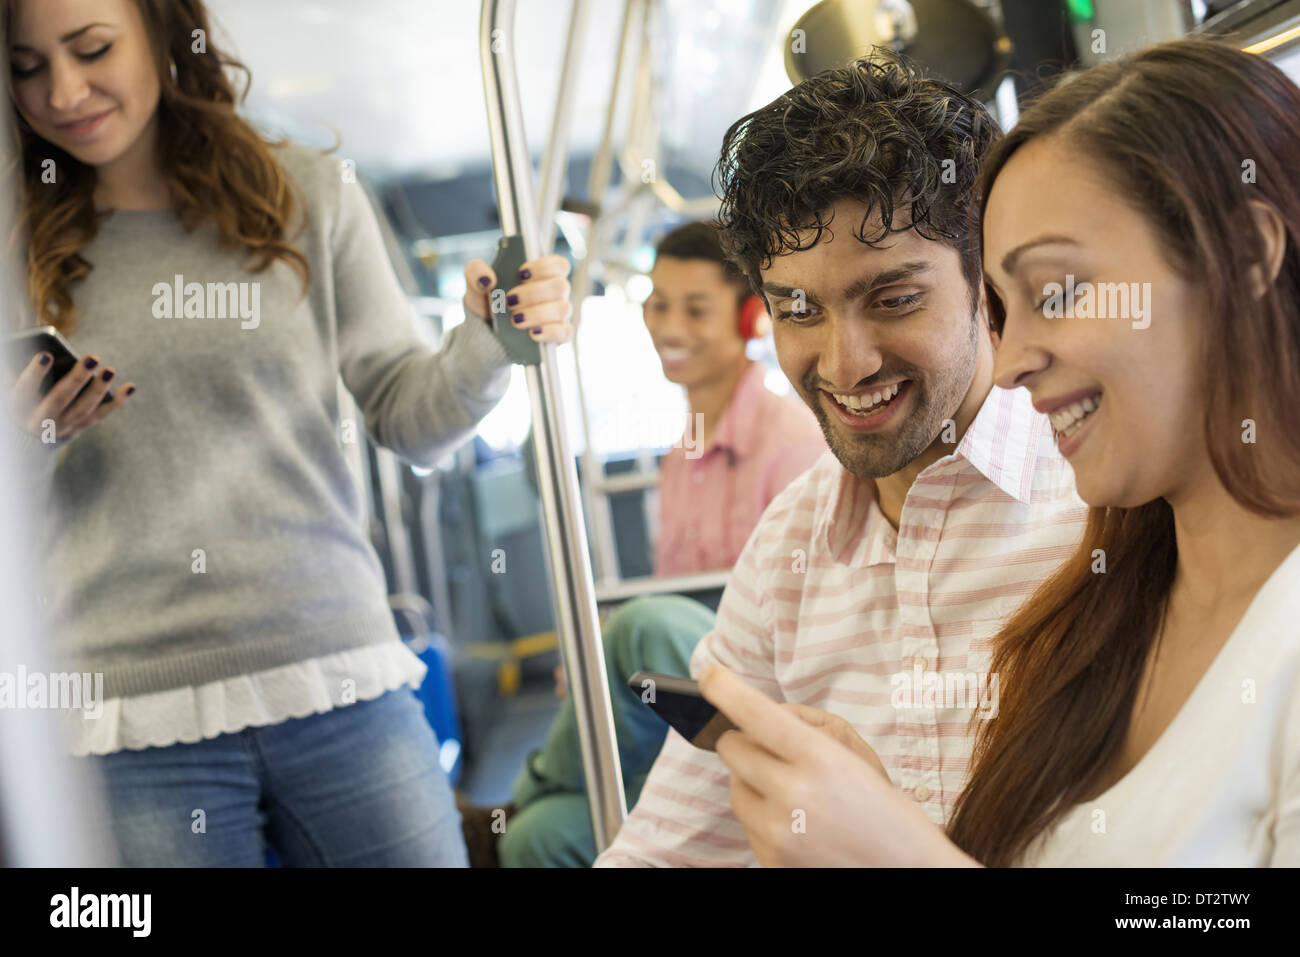 men and women on a city bus in New York city A man wearing headphones and a couple looking at a mobile phoneStock Photo